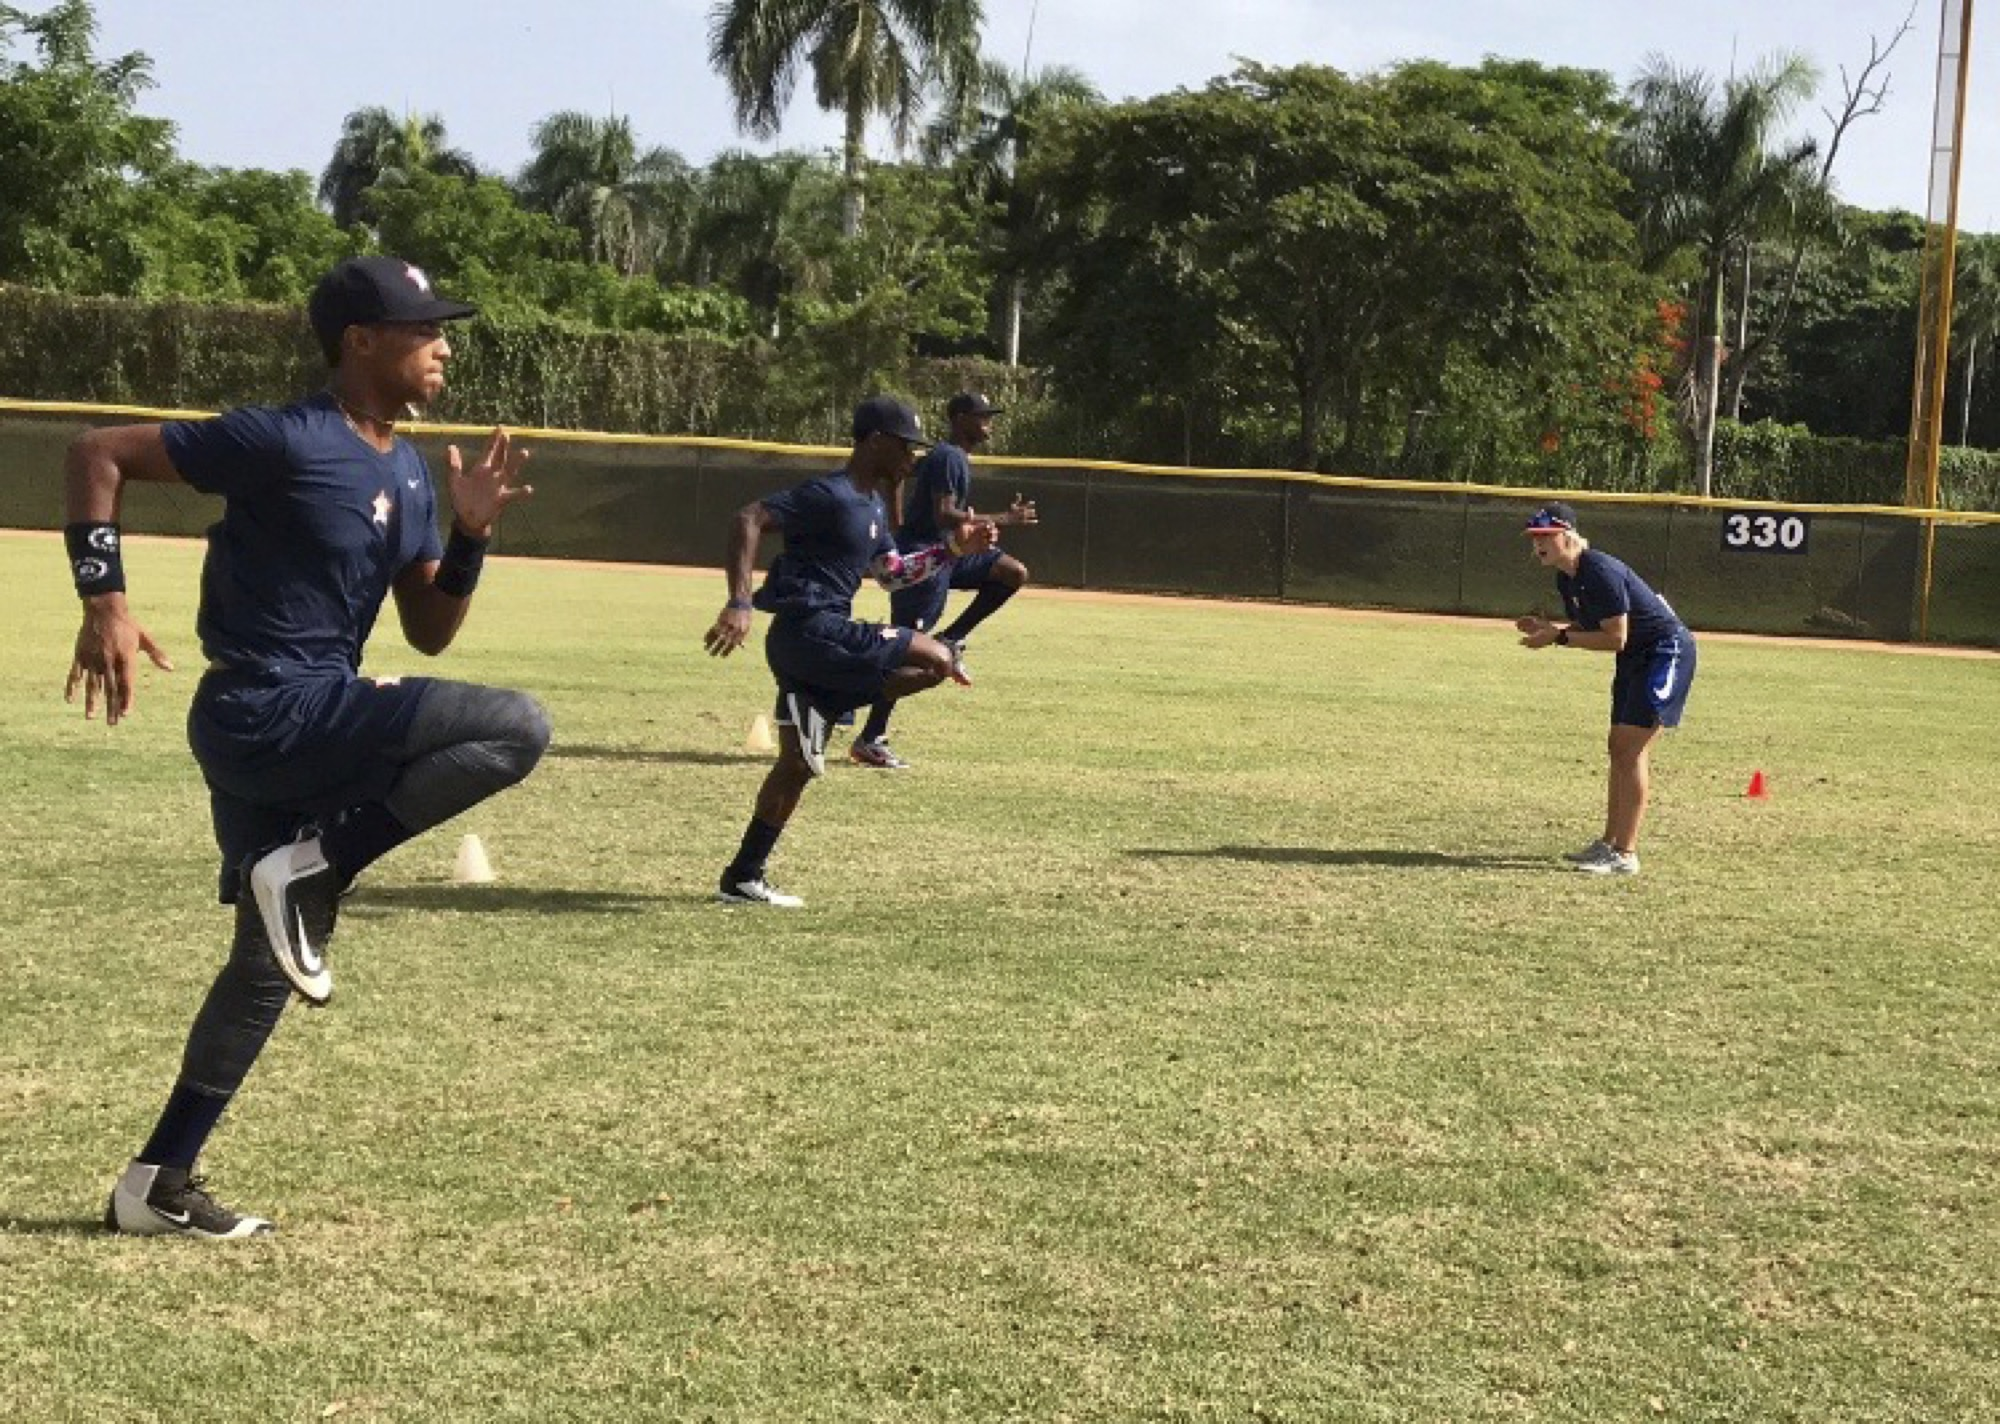 Brandonite Brittany Wiebe, right, puts players with the Houston Astros' affiliate team in the Dominican Summer League through their paces. The Crocus Plains graduate is the team's strength and conditioning coach.